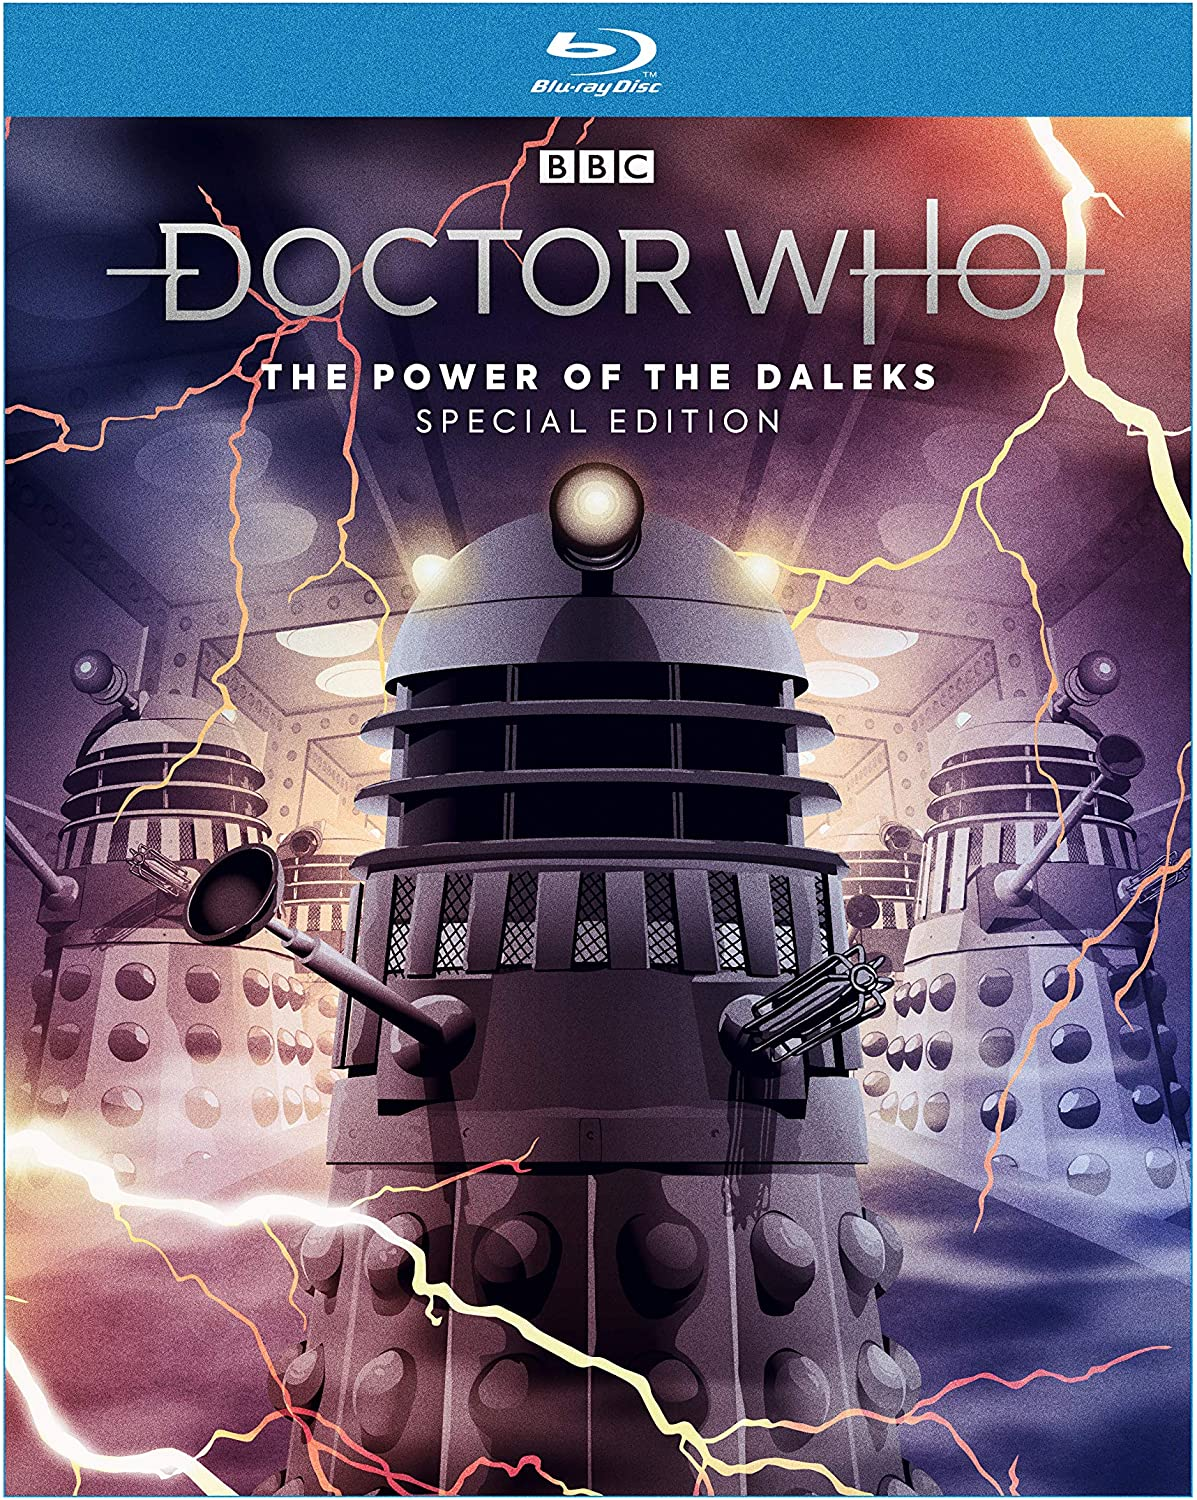 Doctor Who - The Power Of The Daleks Special Edition [Blu-Ray] (Due out 03.07.20)